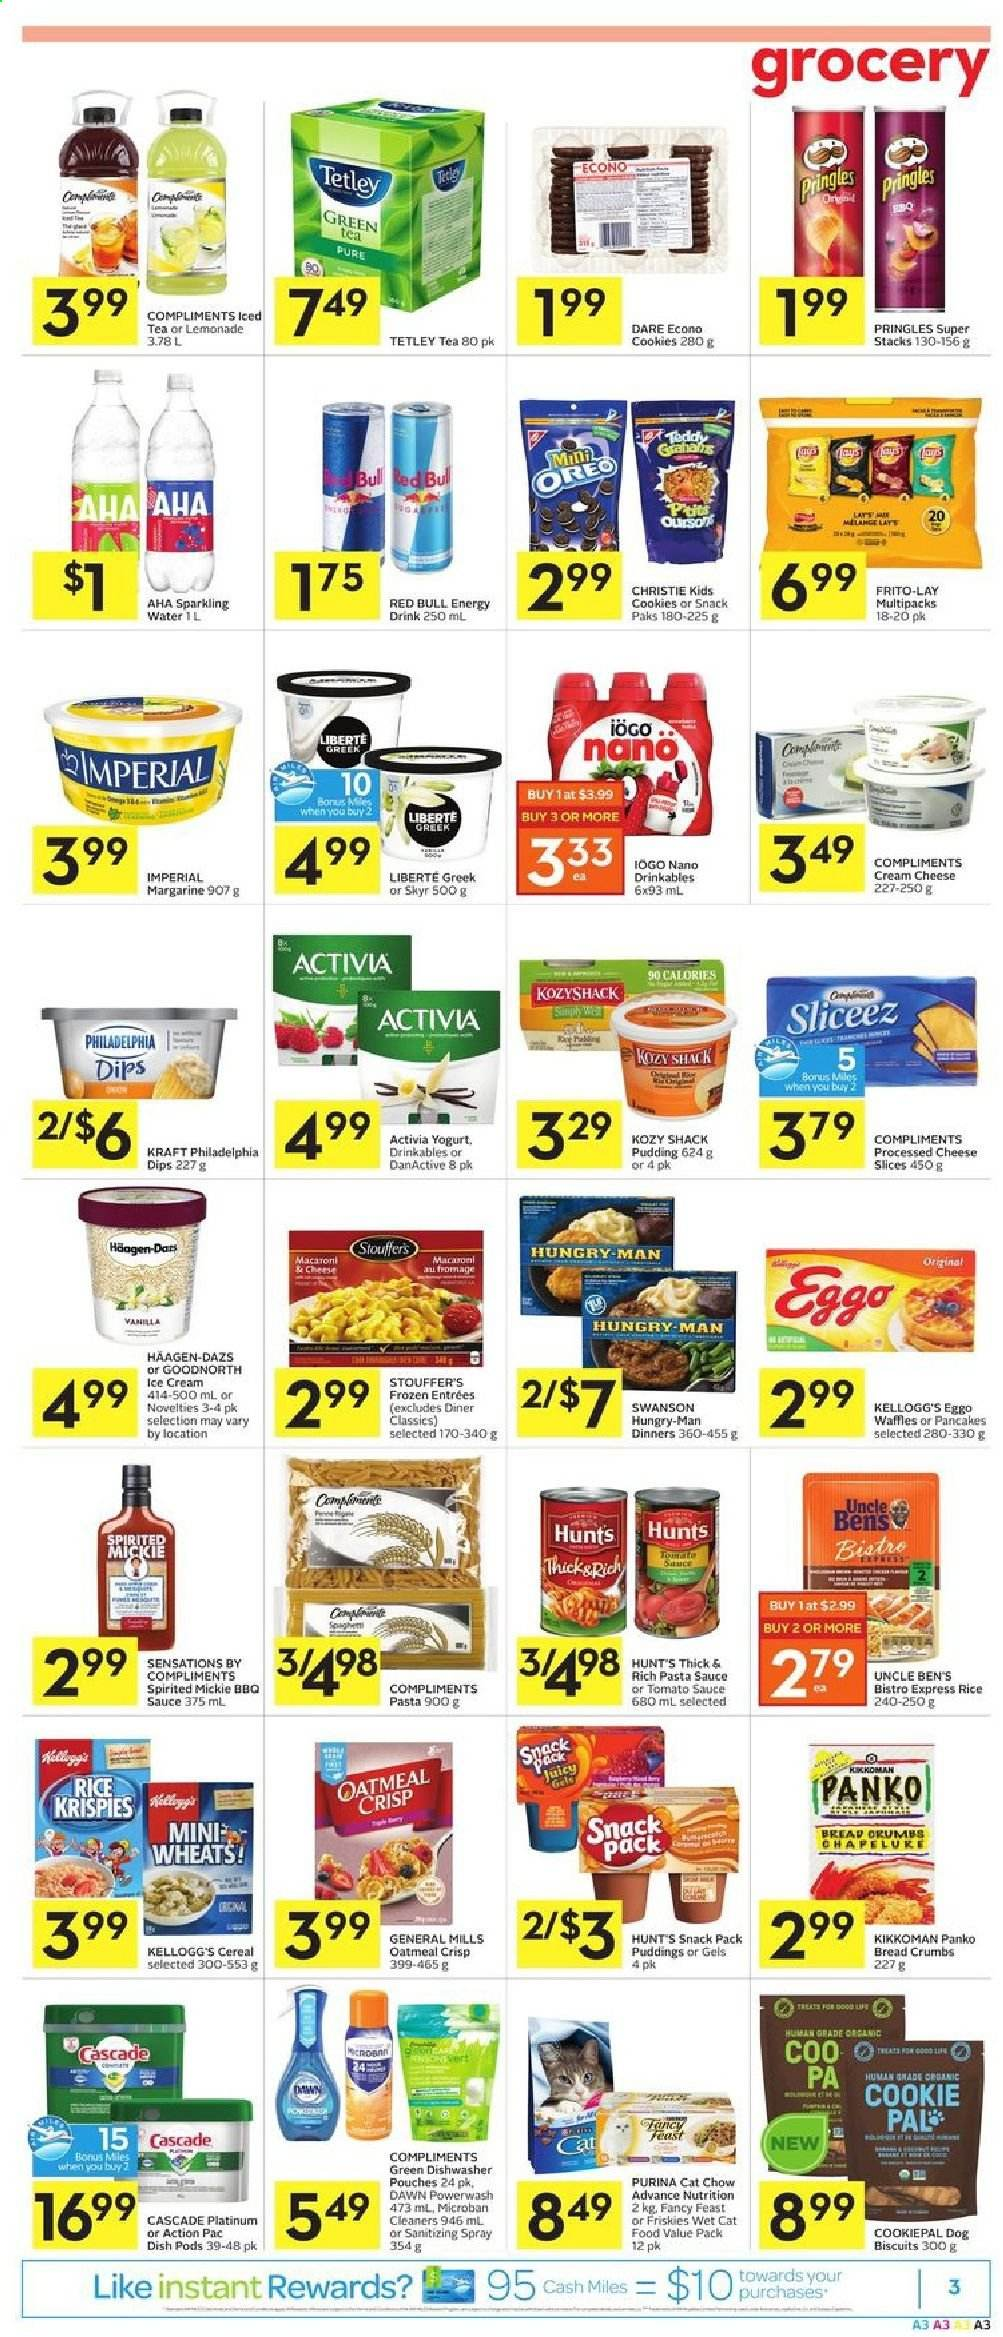 Foodland Flyer - July 09, 2020 - July 15, 2020 - Sales products - animal food, barbecue sauce, biscuits, bread, bread crumbs, cascade, cat food, cereals, cookies, cream cheese, dishwasher, green tea, lemonade, margarine, rice, tea, tomato sauce, yogurt, ice cream, philadelphia, pringles, pudding, purina, cheese slices, pancakes, pasta sauce, oatmeal, oreo, organic, chow, kikkoman, cheese, macaroni, dog biscuits, snack, sparkling water, cereal, pasta, energy drink, sauce, activia, biscuit, friskies, kellogg's. Page 3.